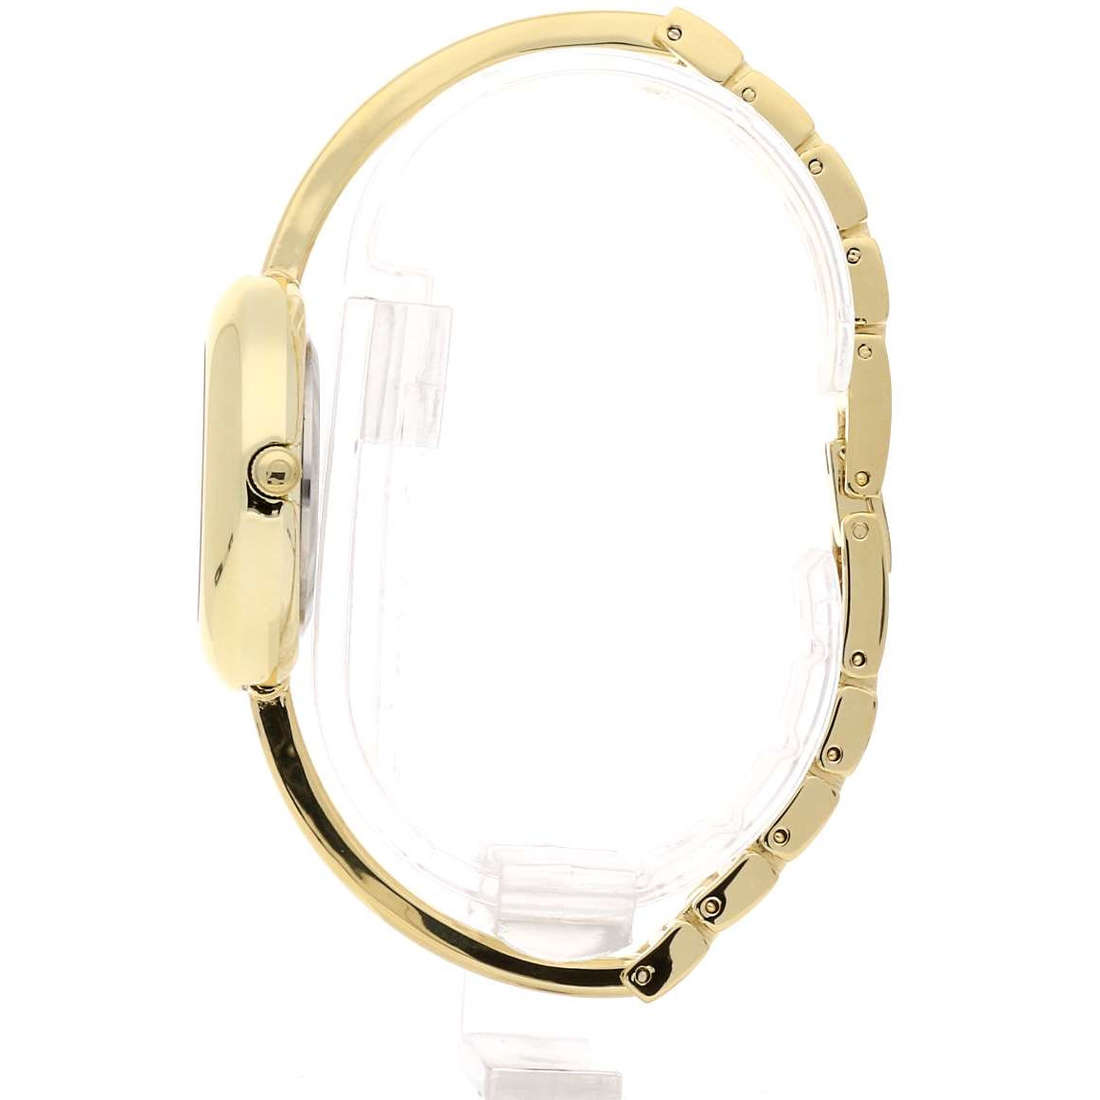 prix montres femme Ops Objects OPSPW-351